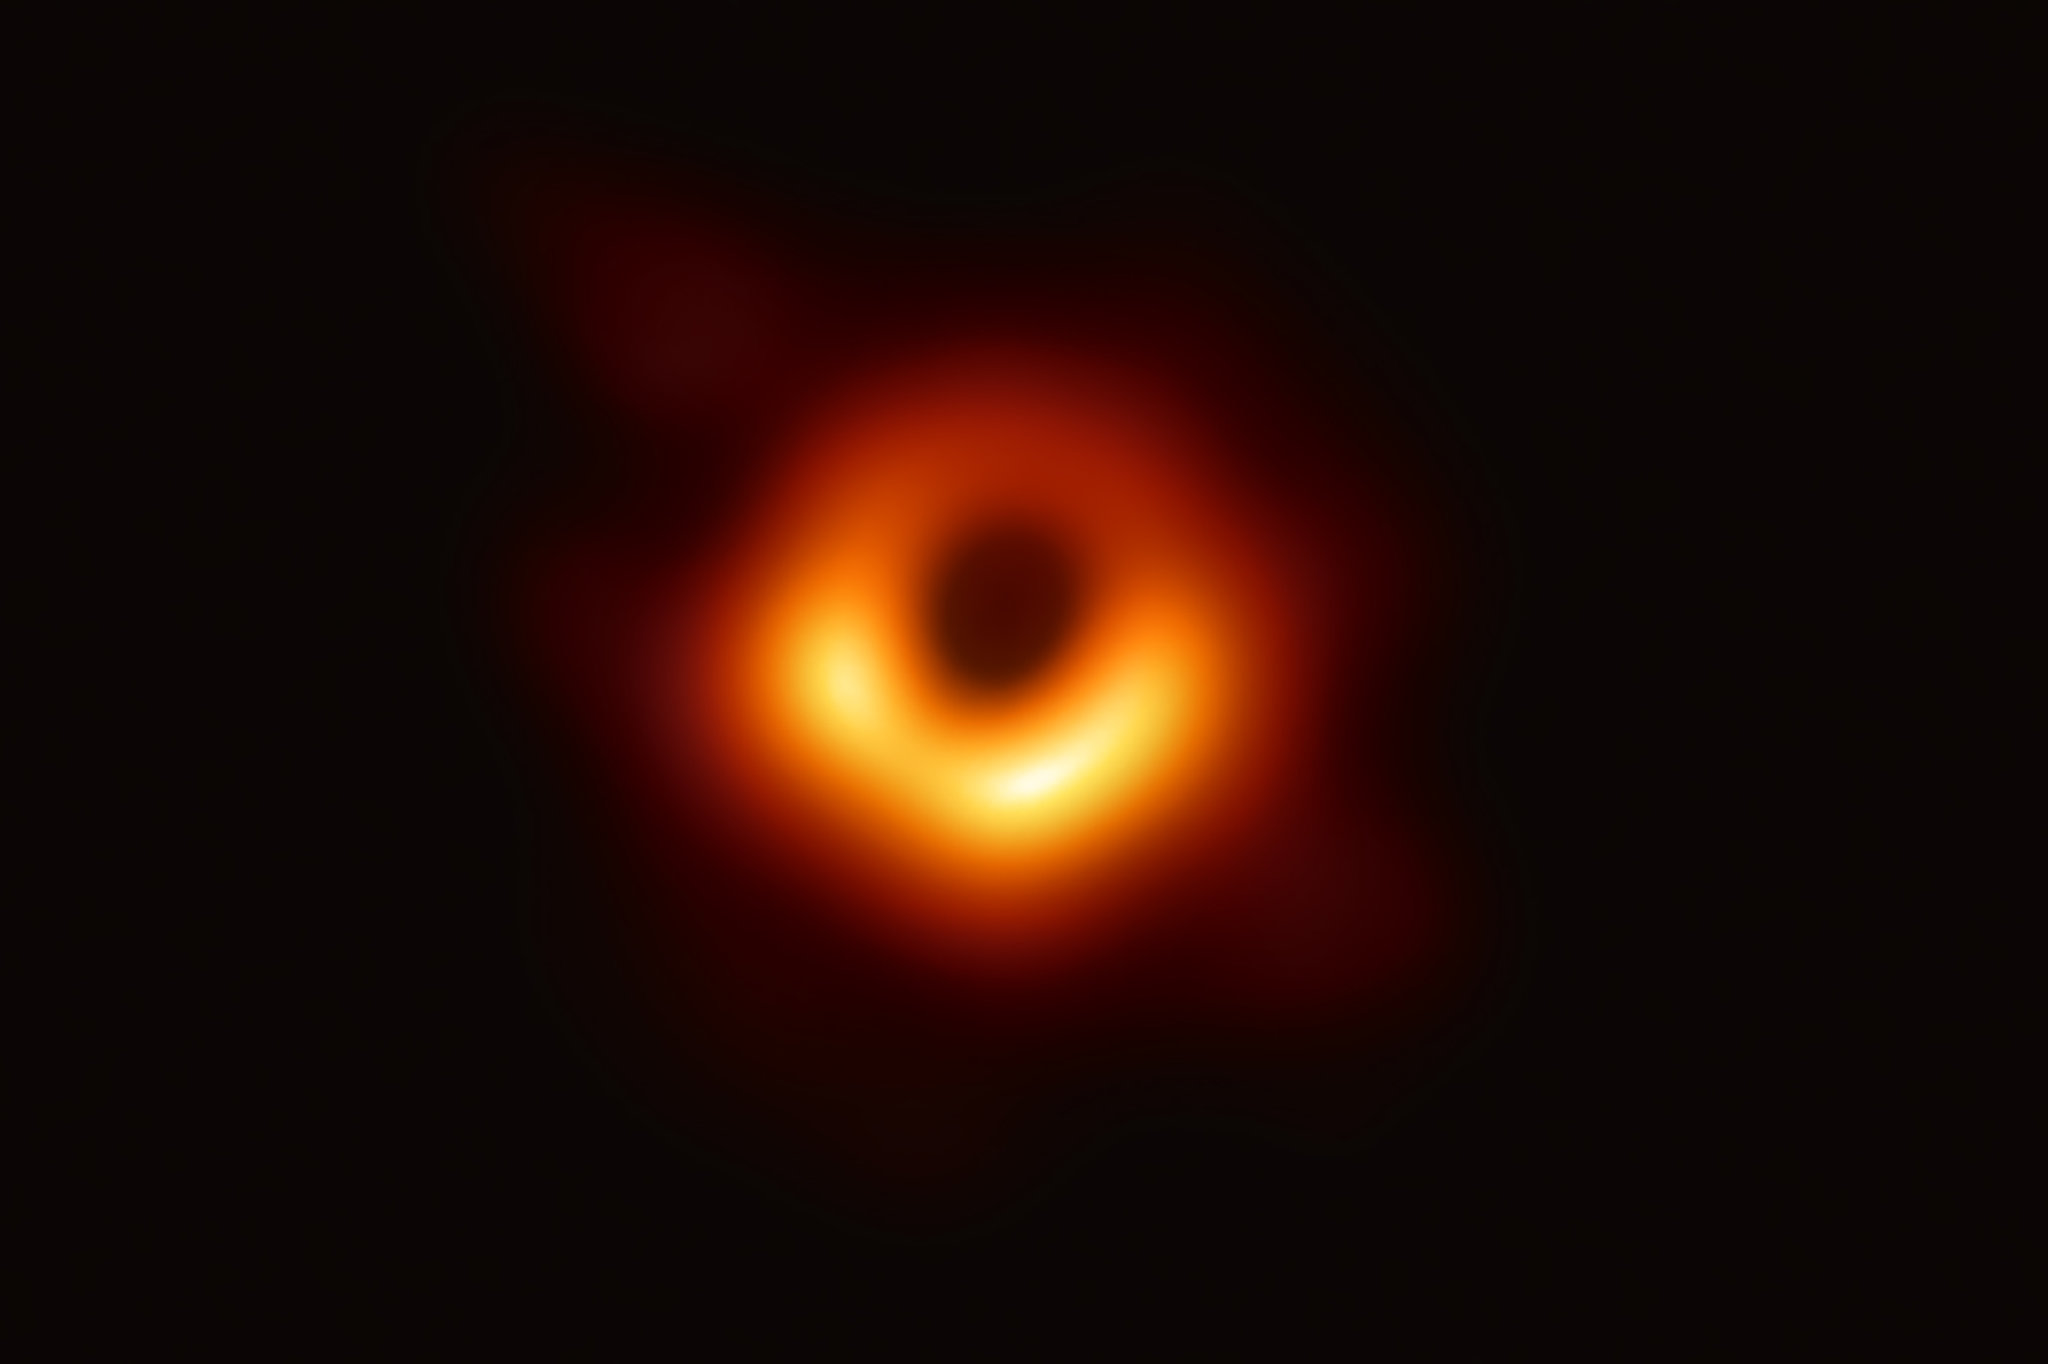 10BLACKHOLEPHOTO-superJumbo-v3.jpg